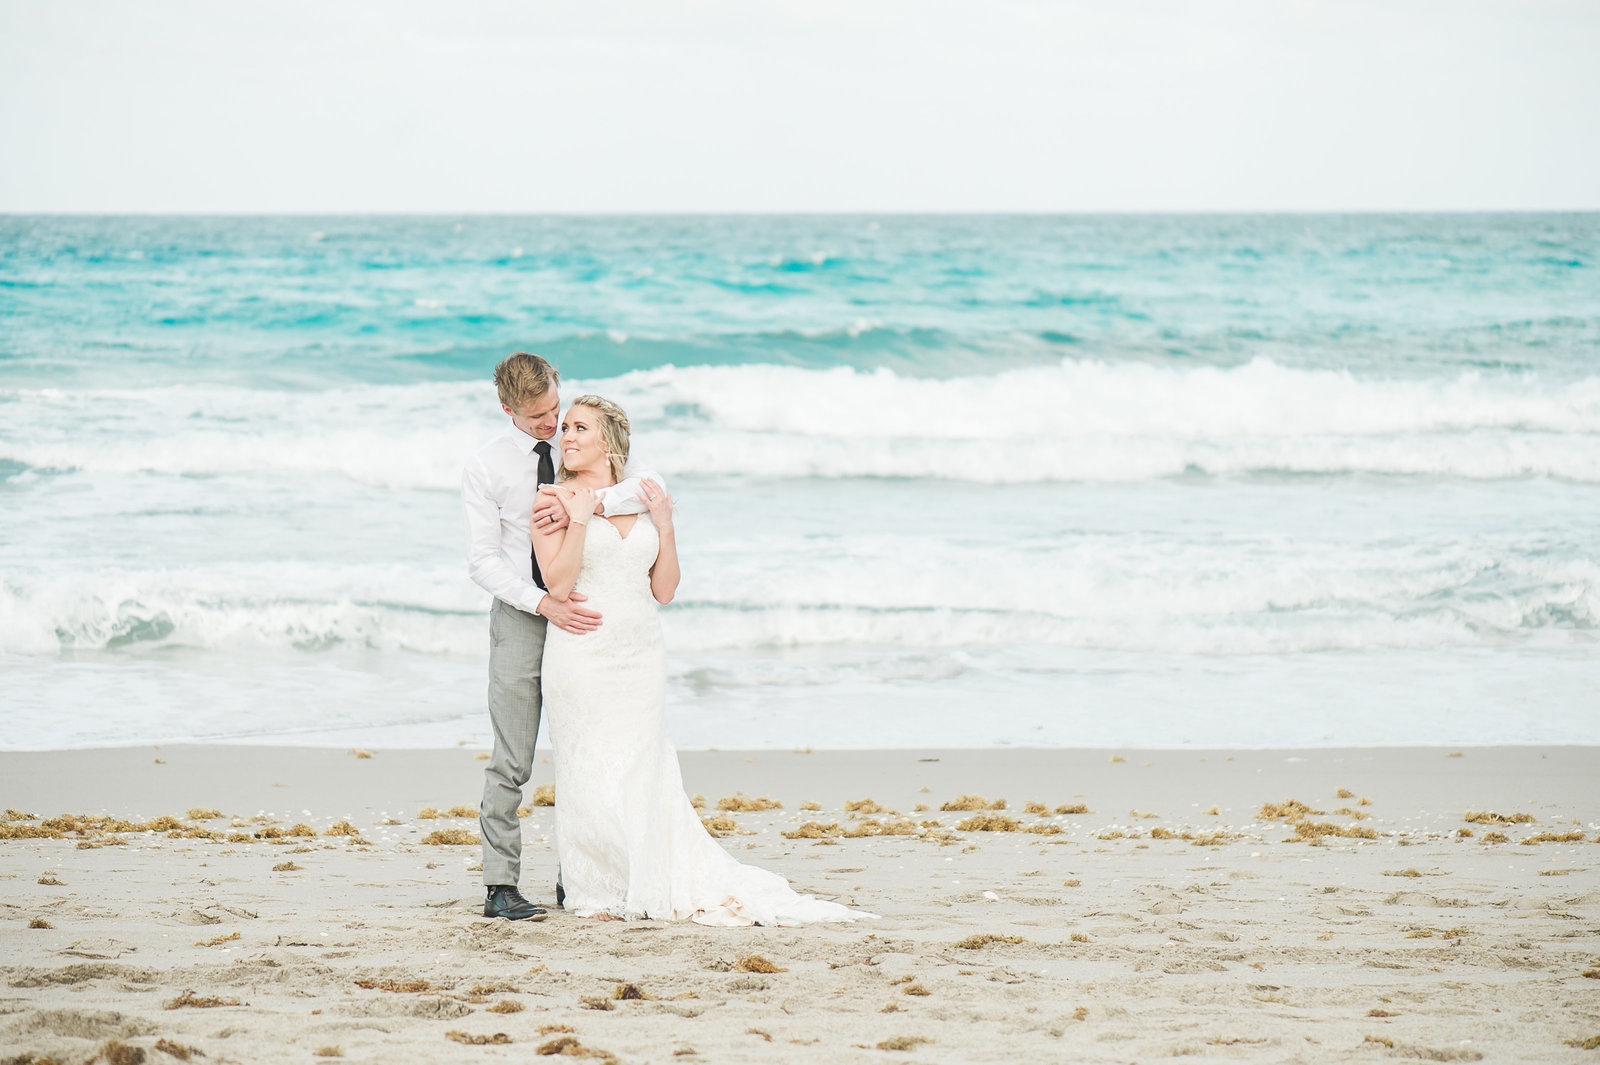 Beach Theme Wedding - Hilton Singer Island Wedding - Palm Beach Wedding Photography by Palm Beach Photography, Inc.